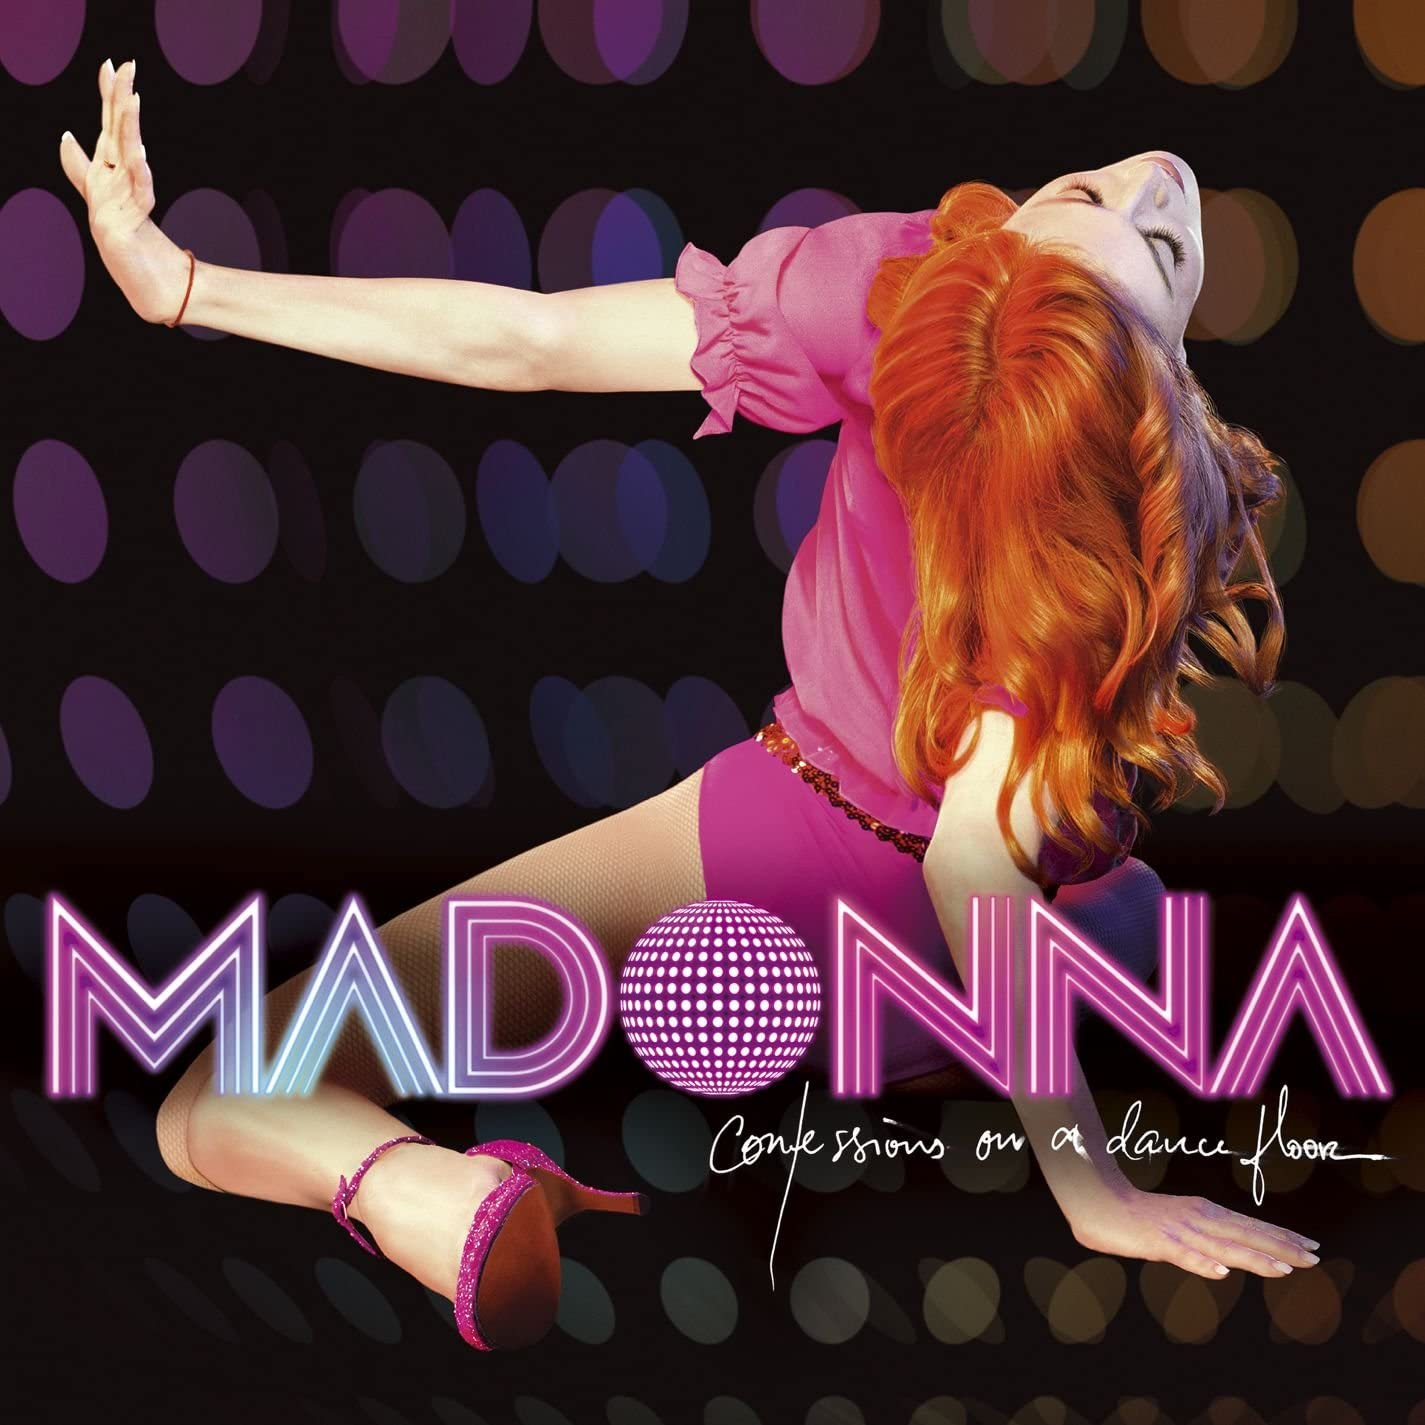 Confessions On A Dance Floor: Madonna: Amazon.it: Musica